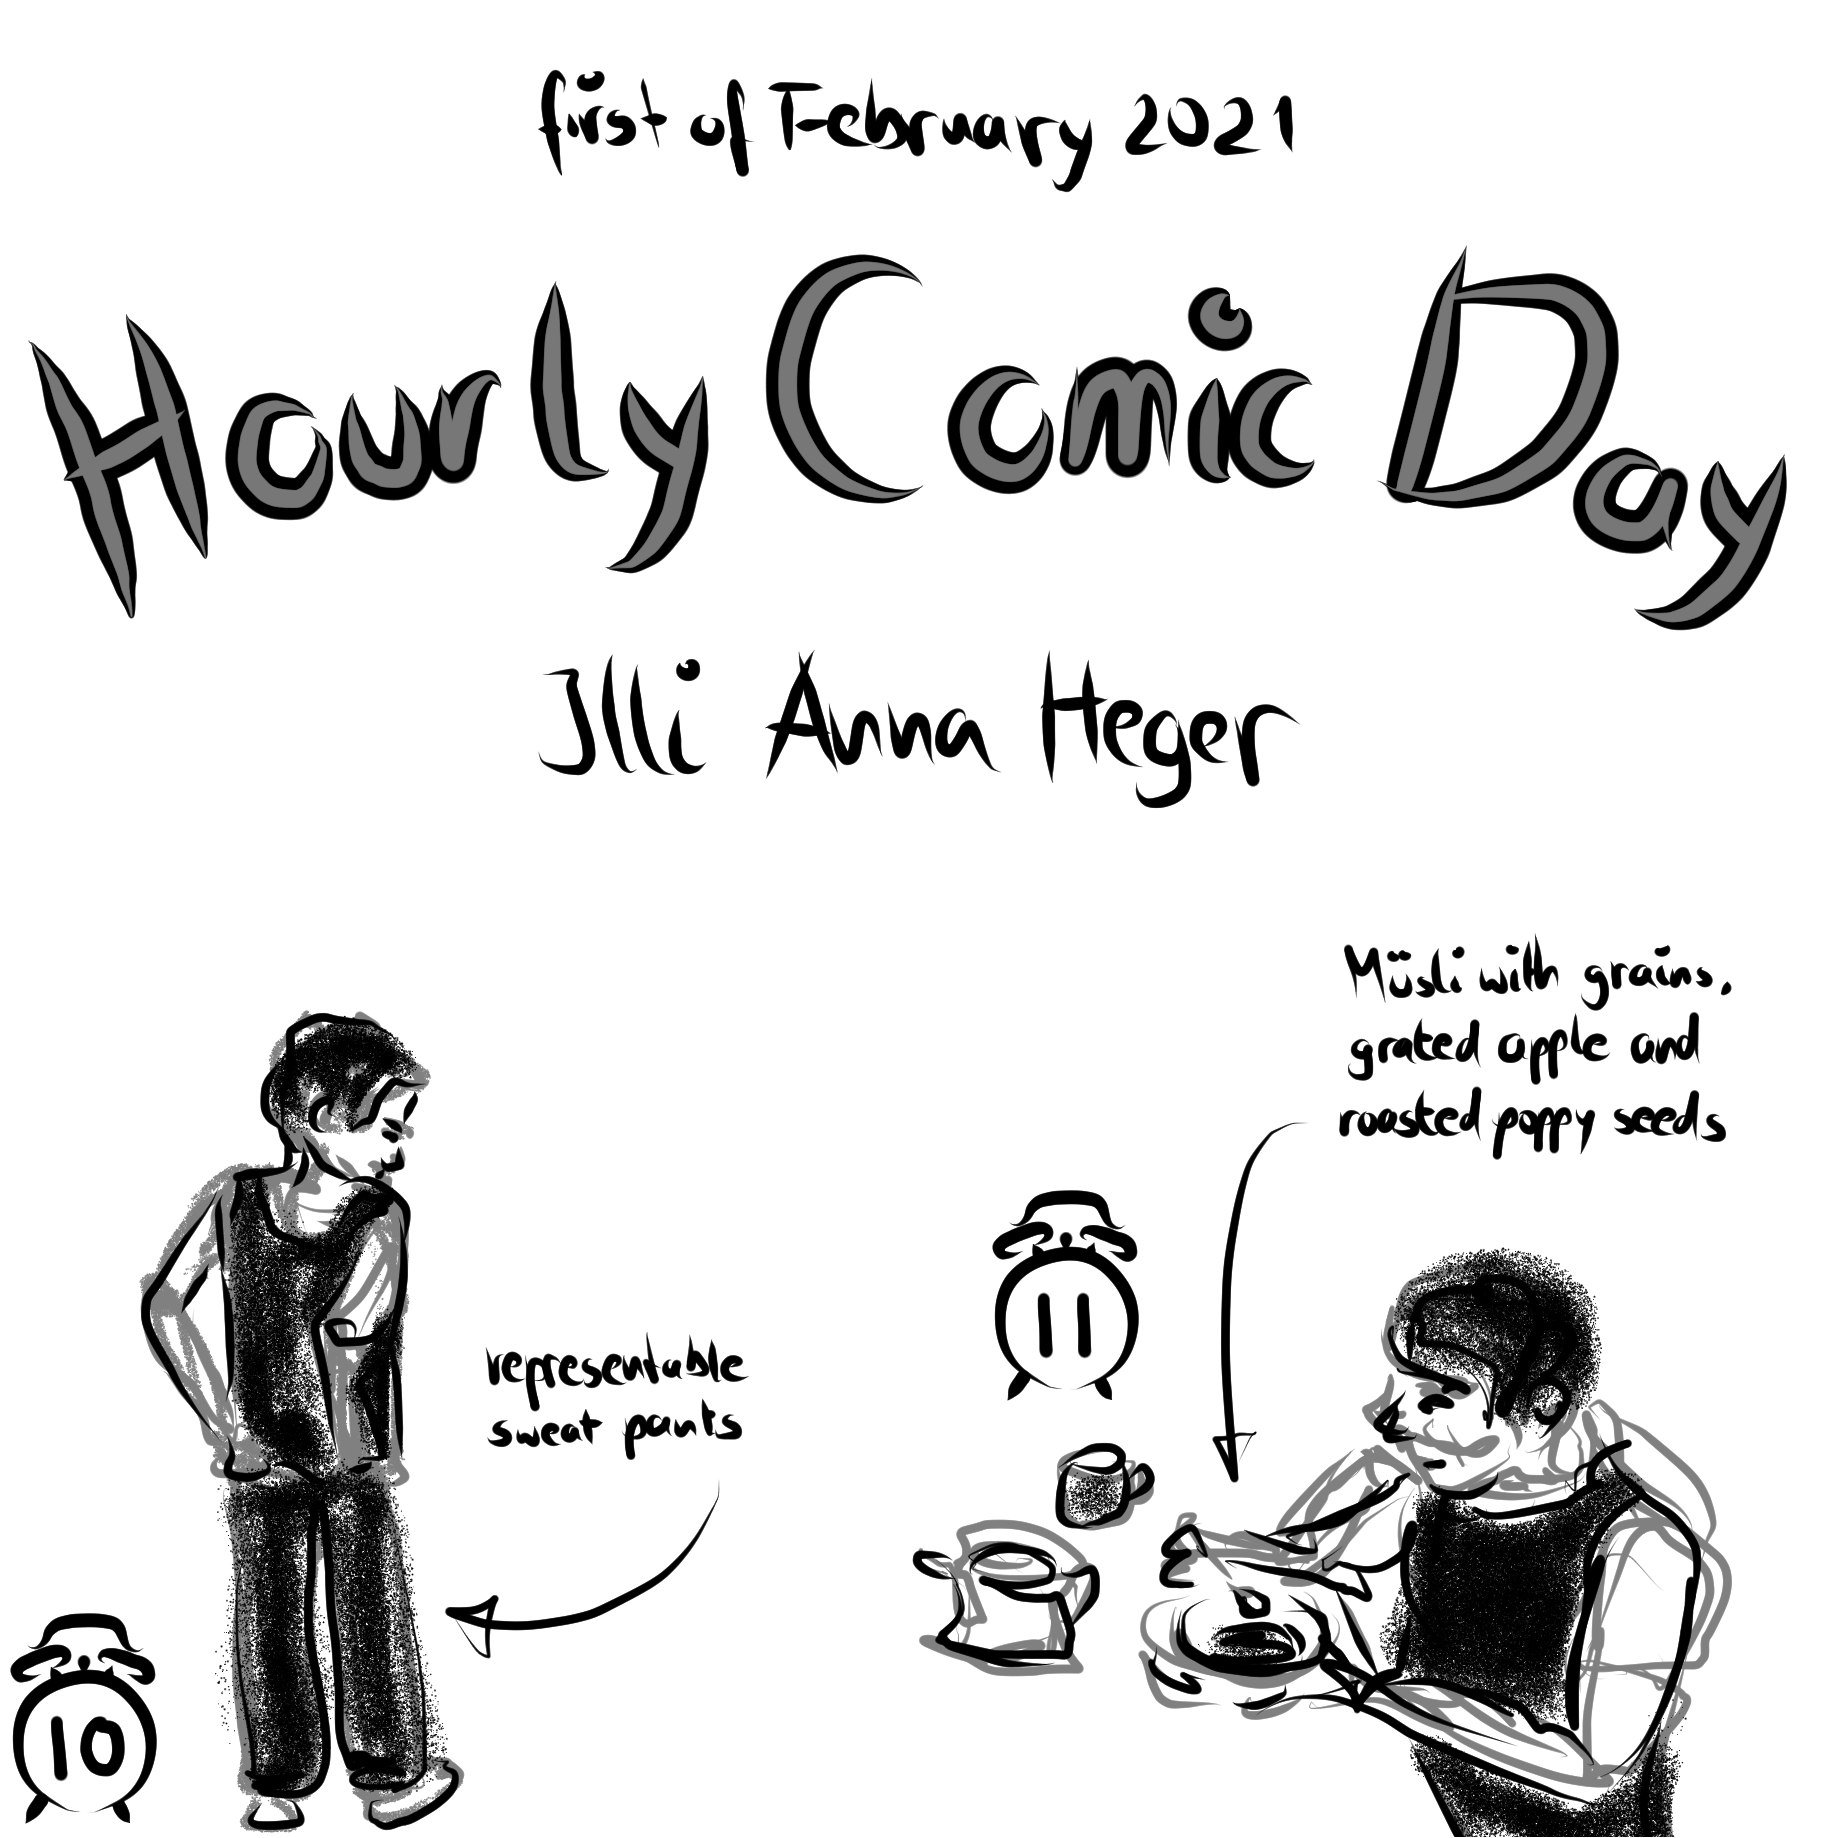 Hourly Comic Day 2021, the entire comic is transcribed to plain text